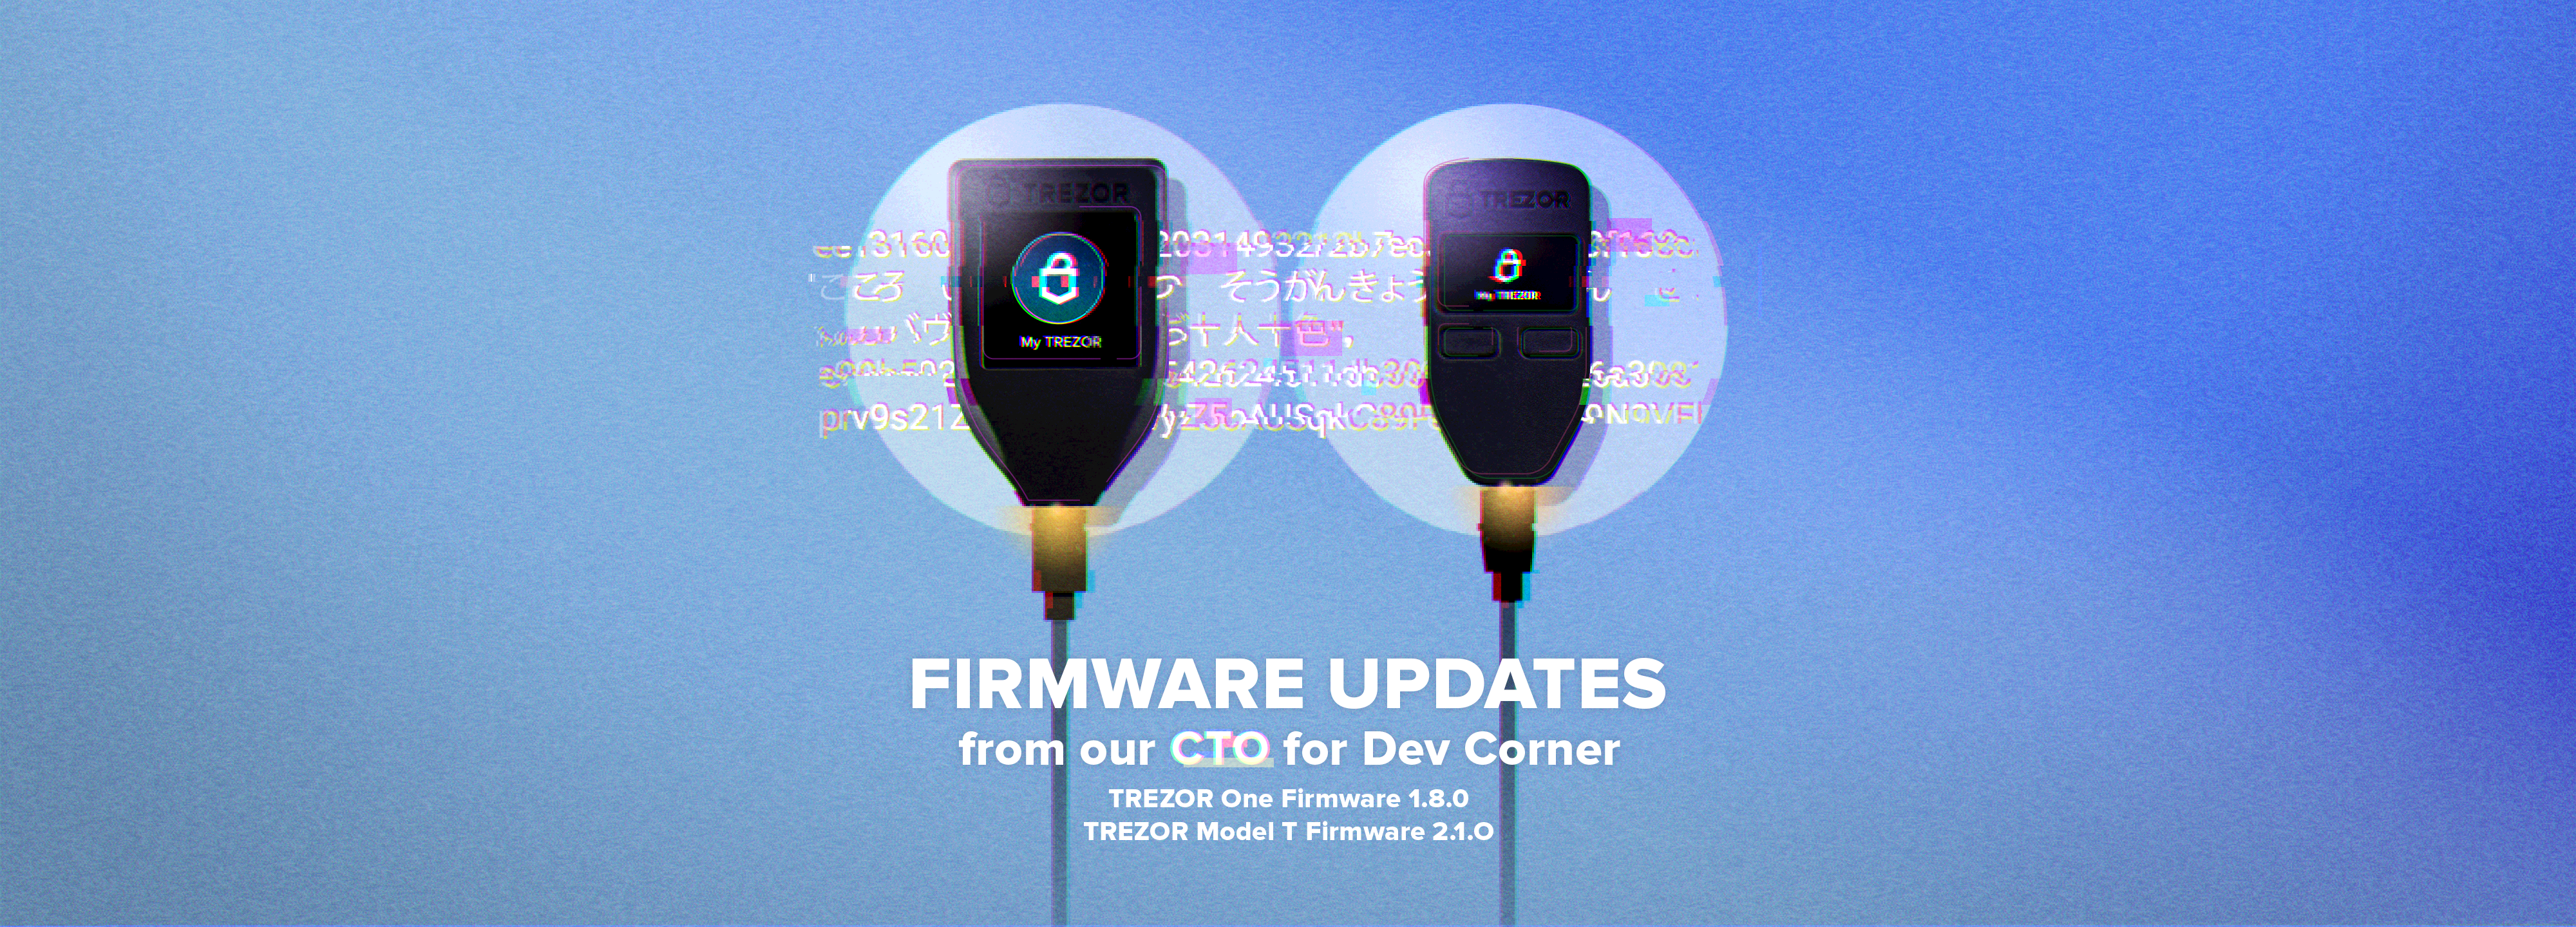 Details of Security Updates for Trezor One (Firmware 1 8 0